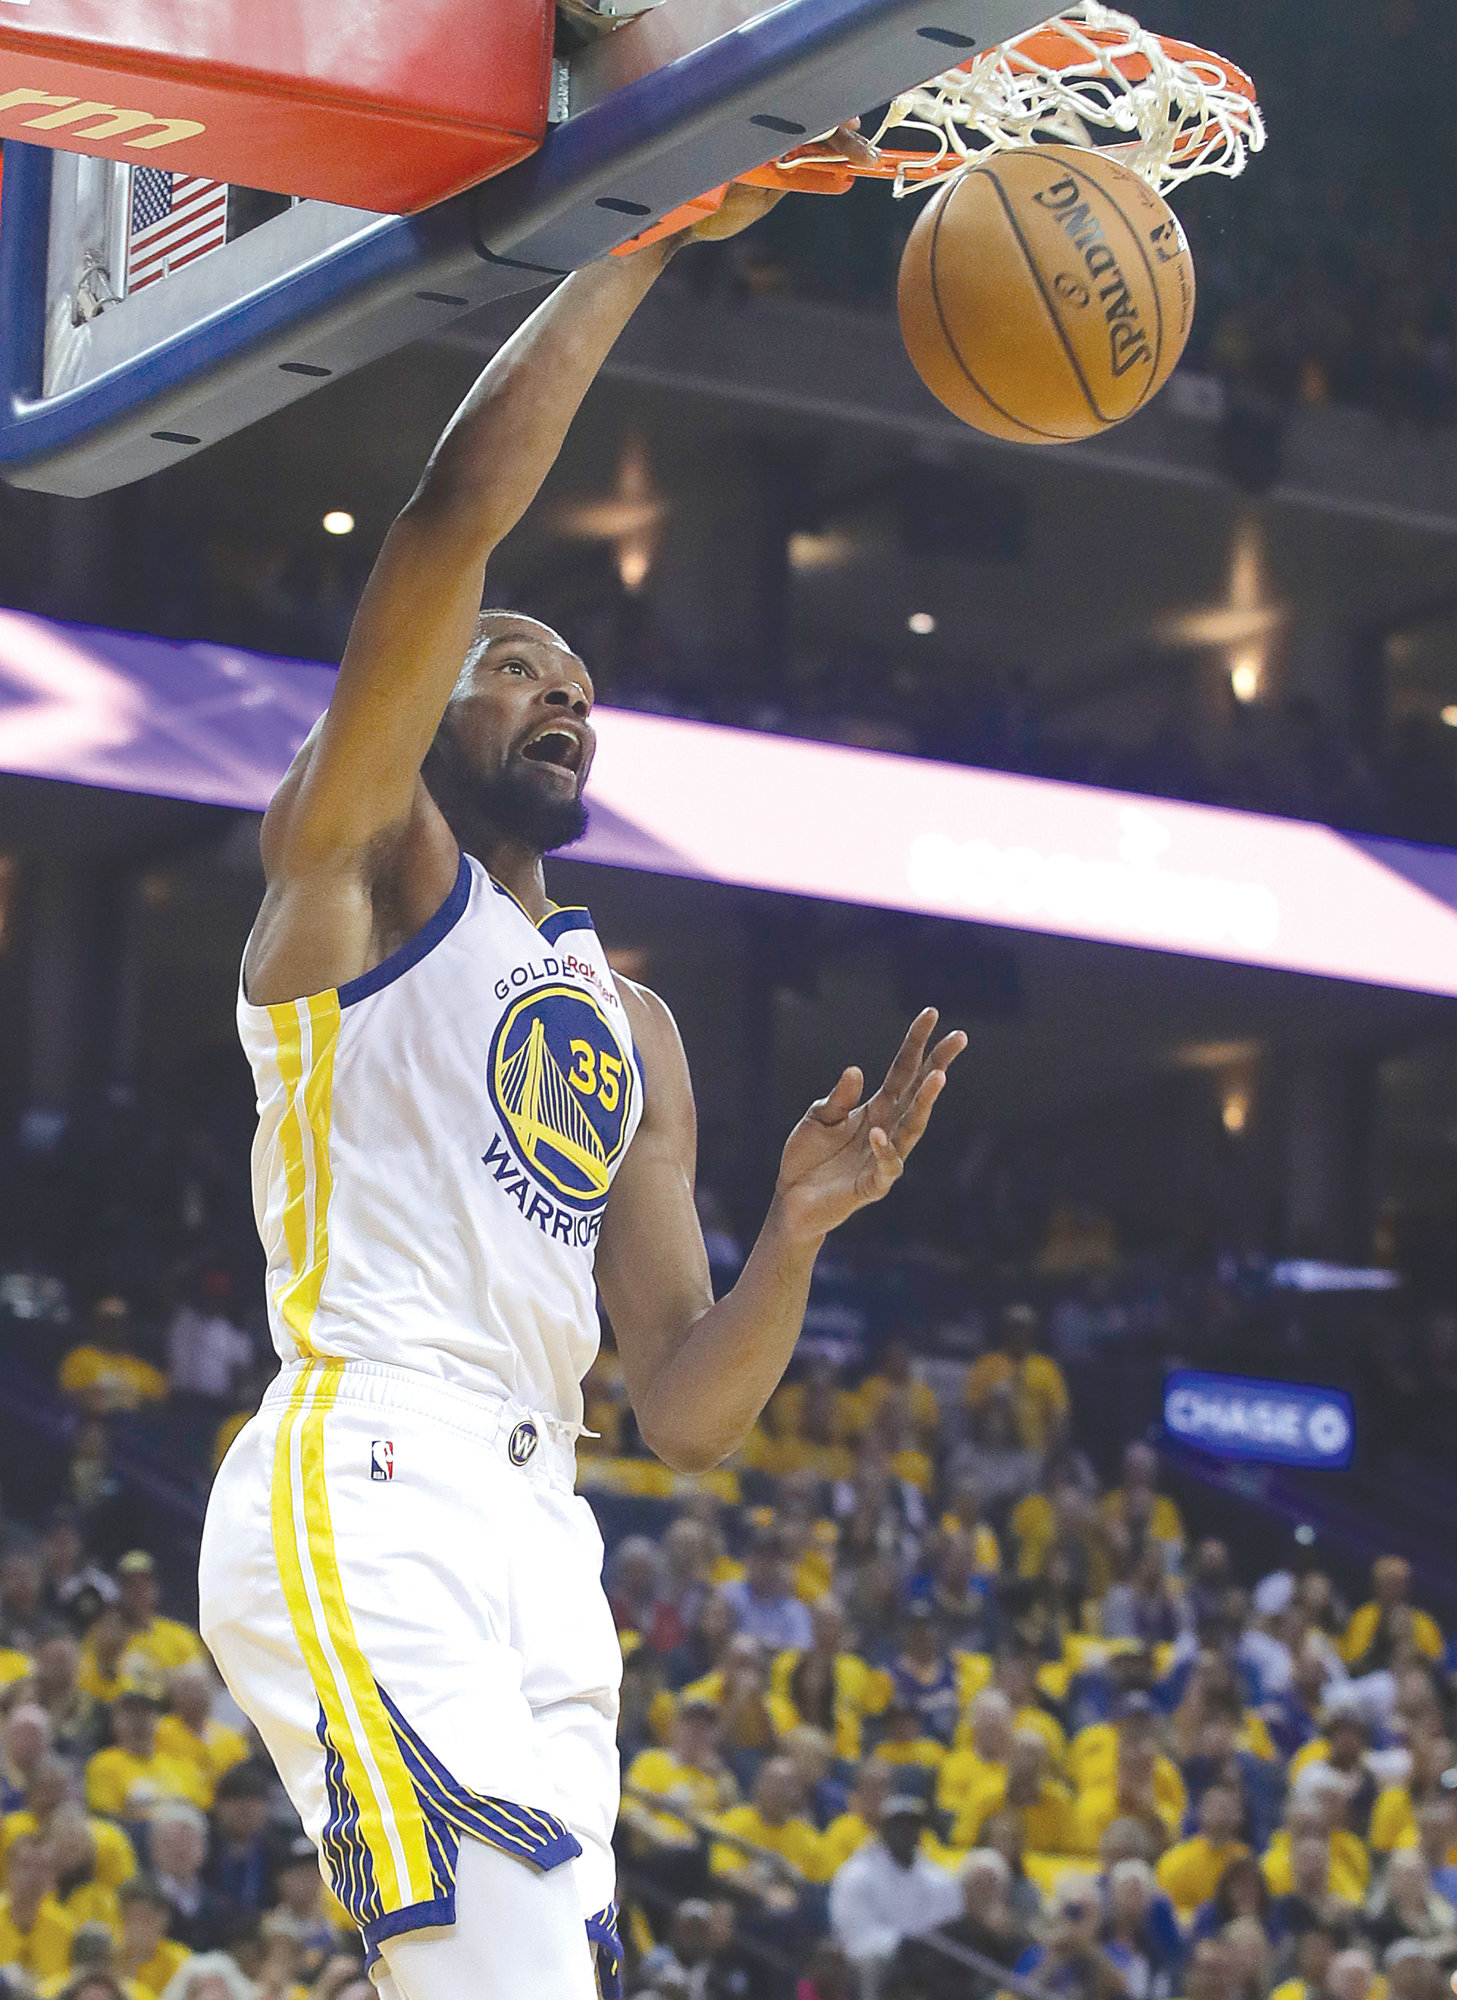 2d4af3494e18 ... Warriors-Rockets Game 1. THE ASSOCIATED PRESS Golden State Warriors  forward Kevin Durant (35) dunks against the Houston